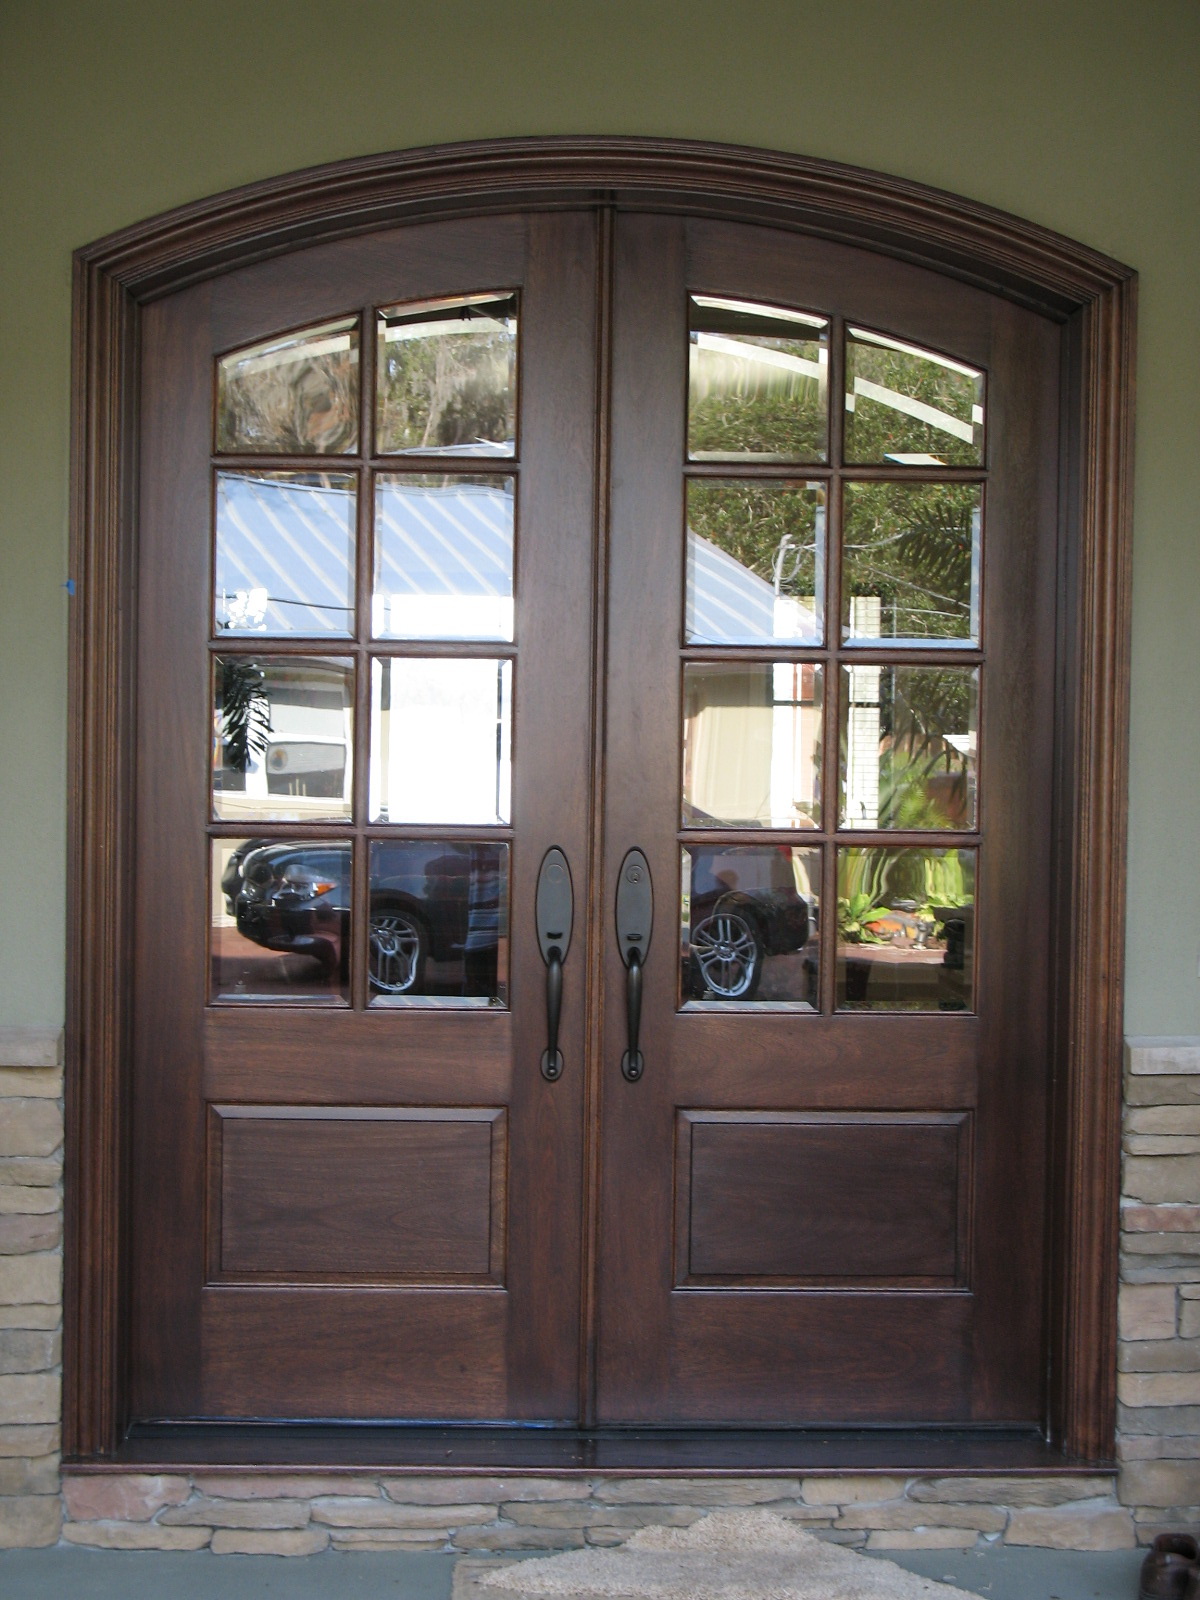 French wood front doors - French Wood Front Doors 5